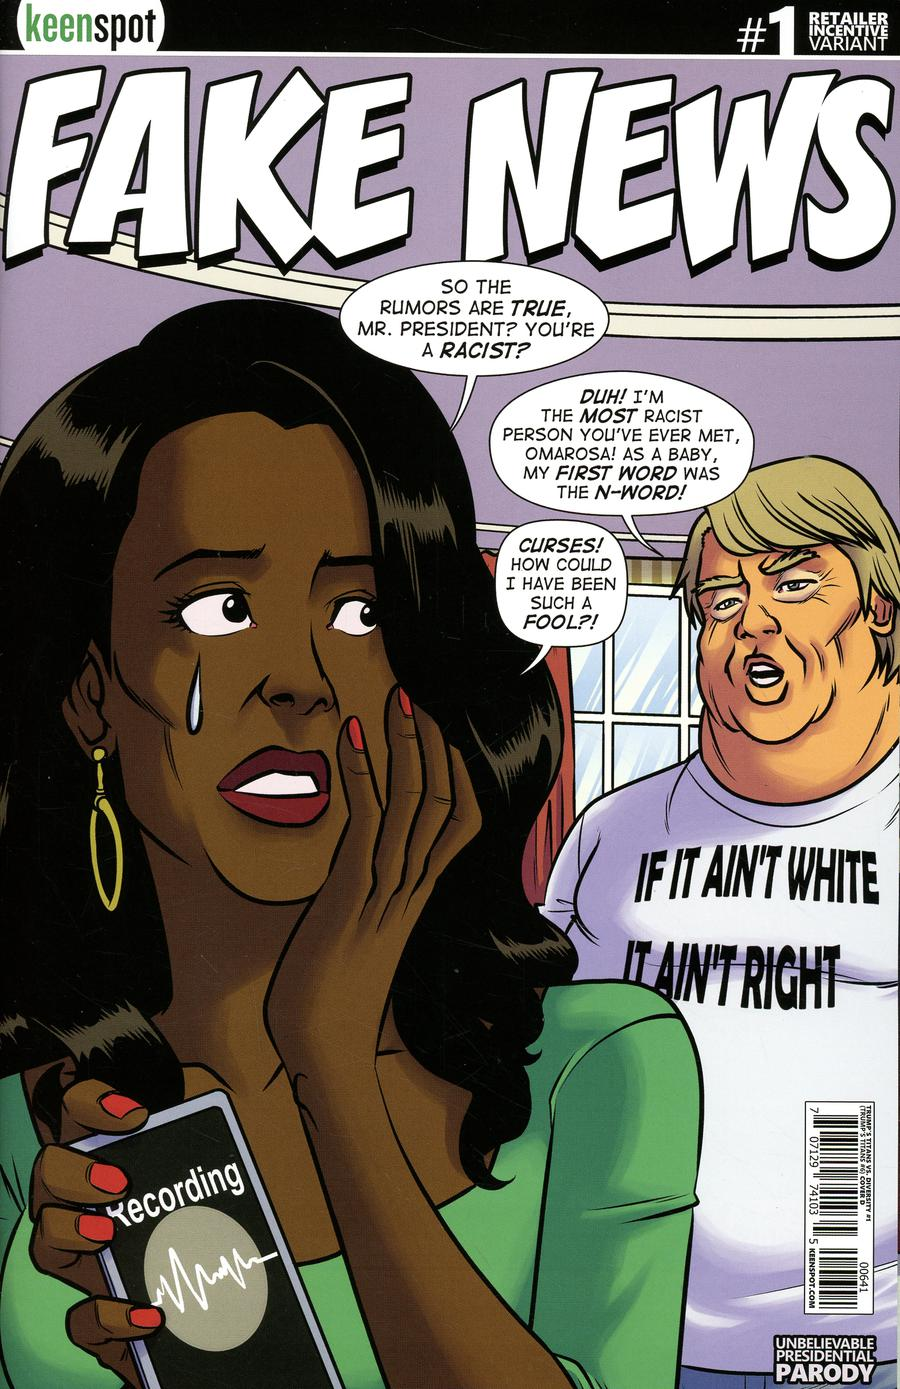 Trumps Titans vs Diversity #1 Cover D Variant Shawn Remulac Very Dishonest Fake News Cover